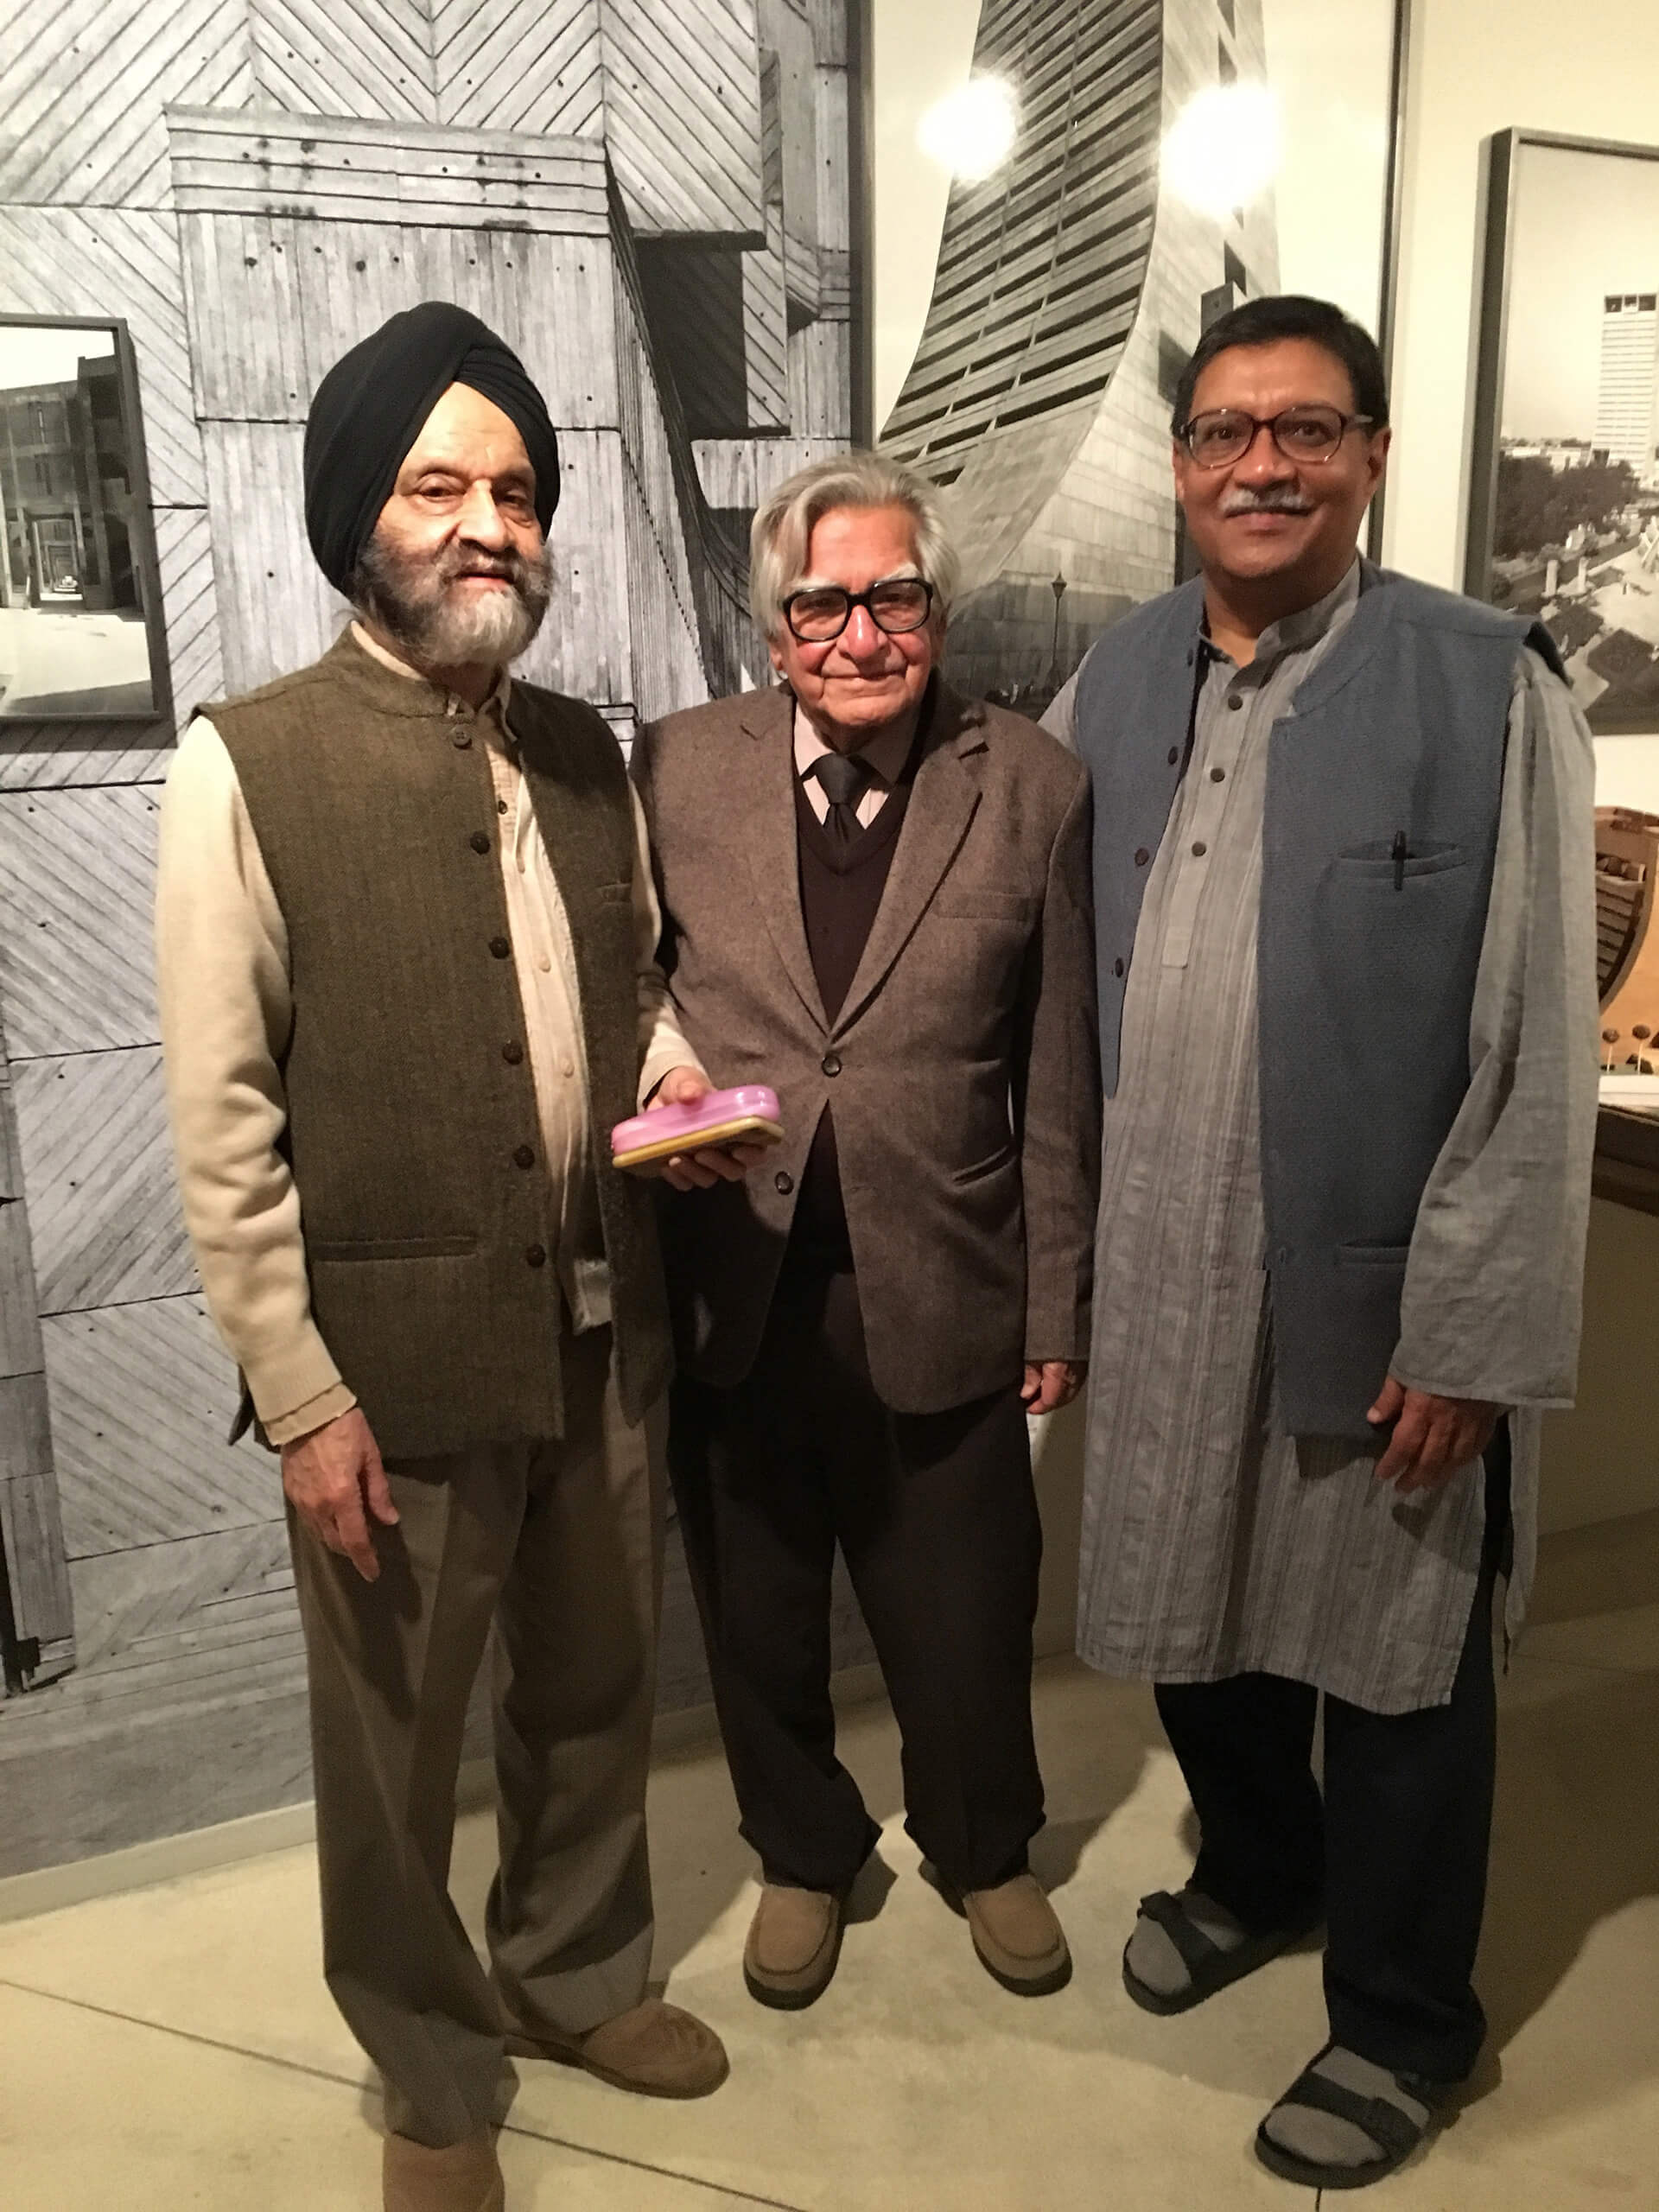 From left to right: Late architect Kuldip Singh, structural engineer Mahendra Raj, and photographer at the exhibition 'Delhi: Building the Modern' at KNMA Delhi in 2017 | Kuldip Singh tribute | STIRworld